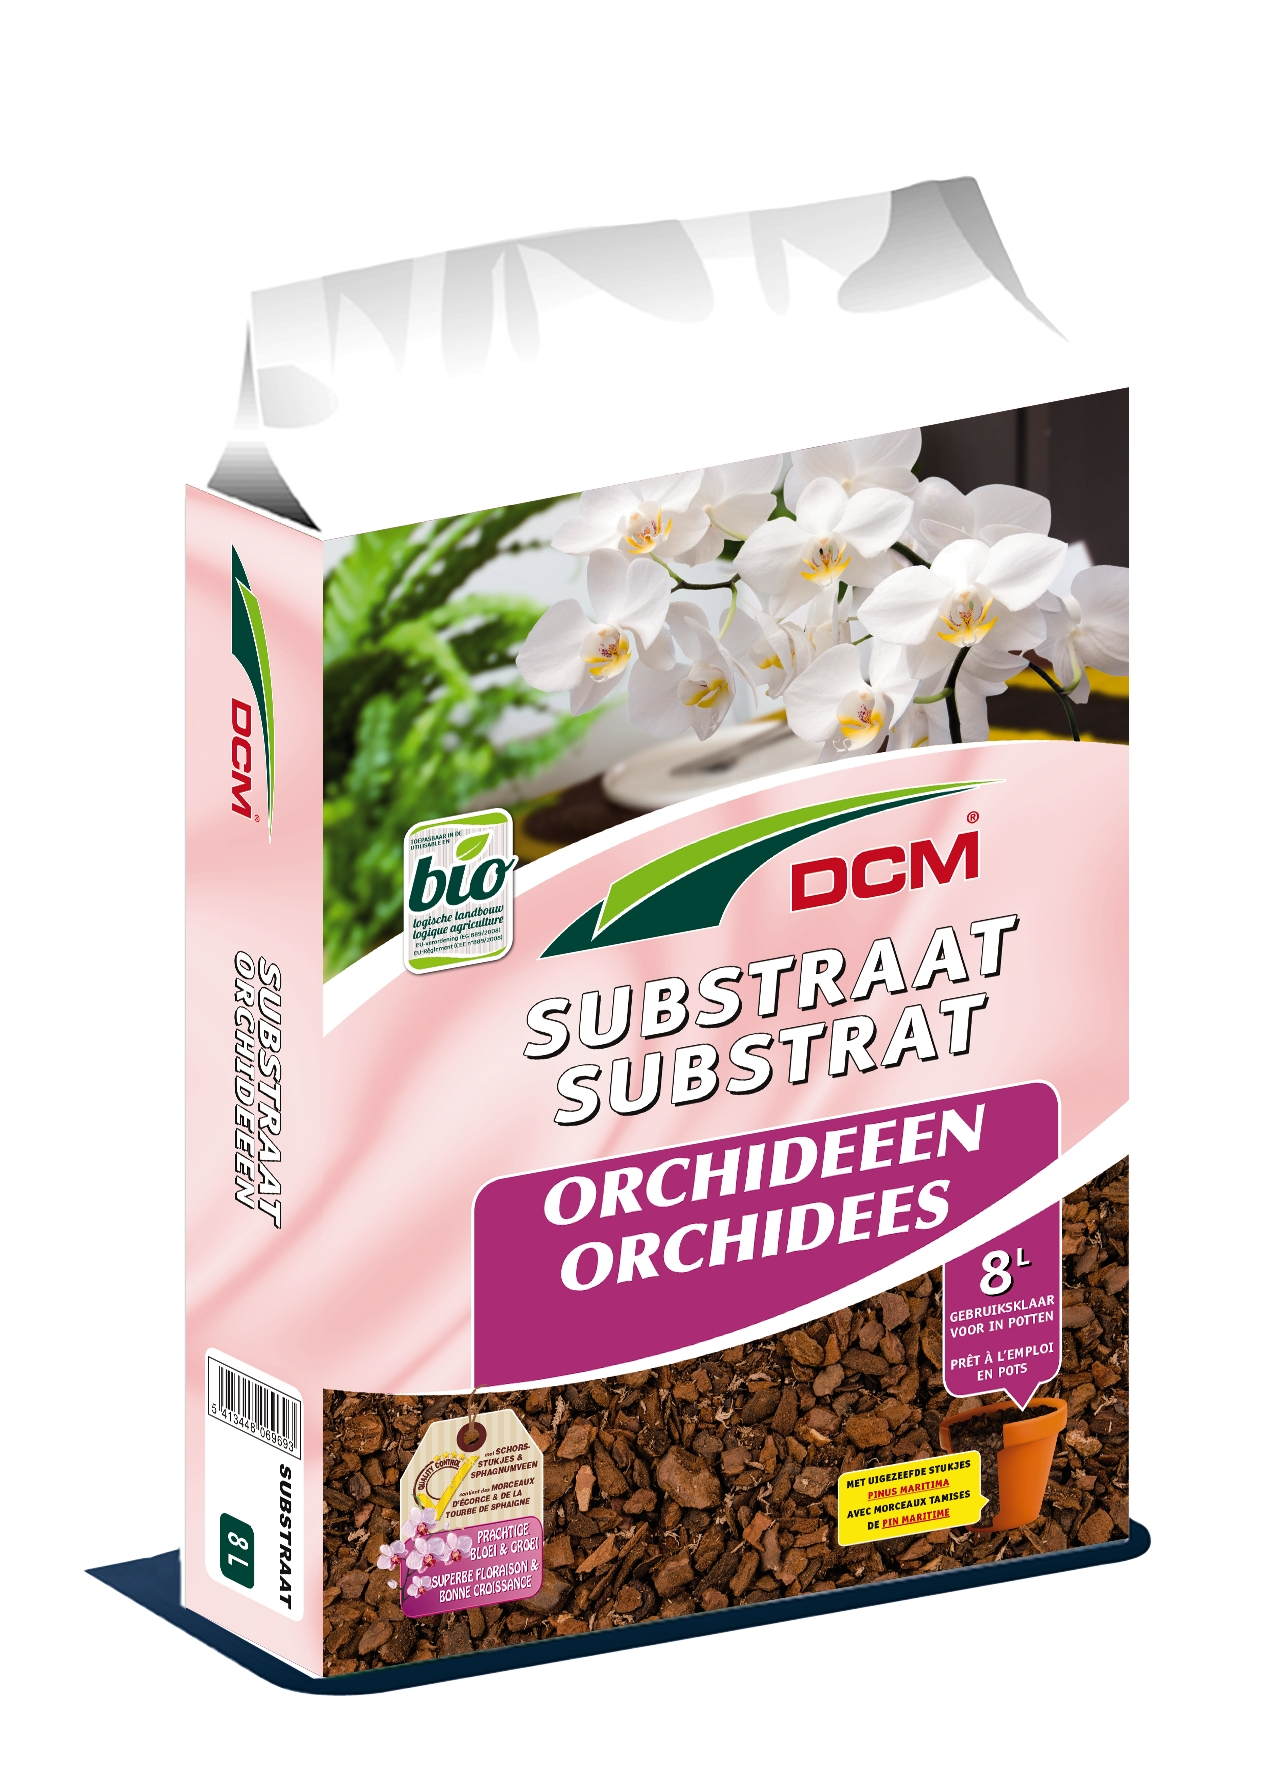 Dcm Orchideeënsubstraat.